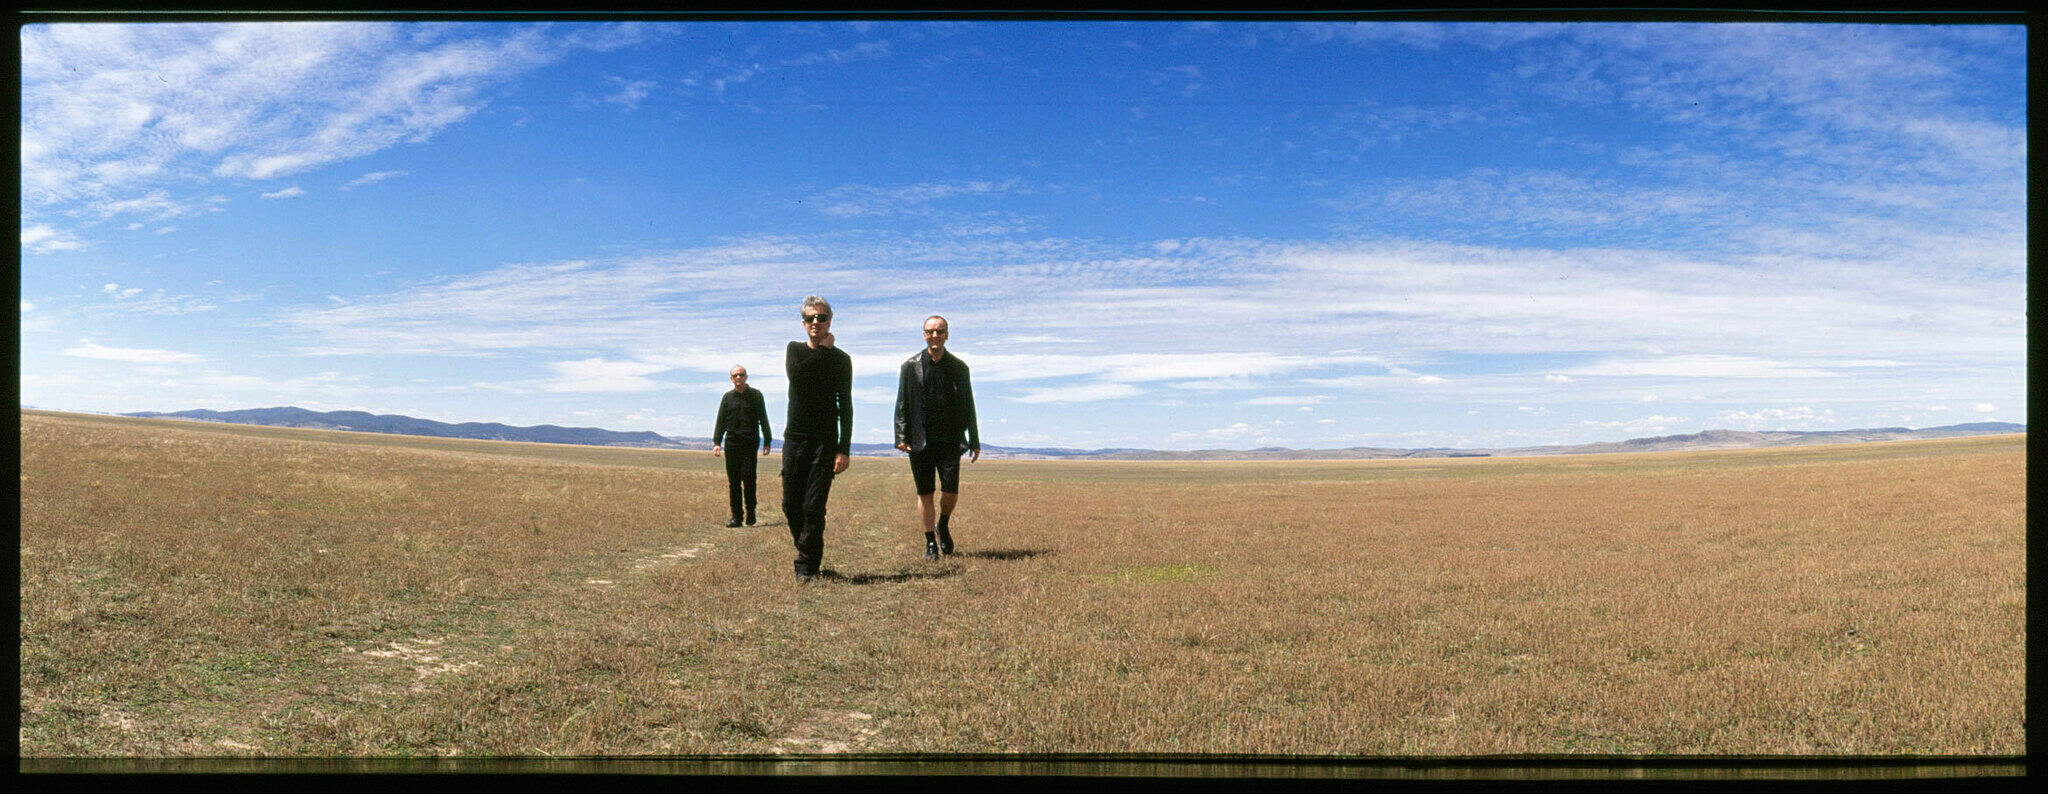 Three men standing in a barren field of short grass walking towards the camera.